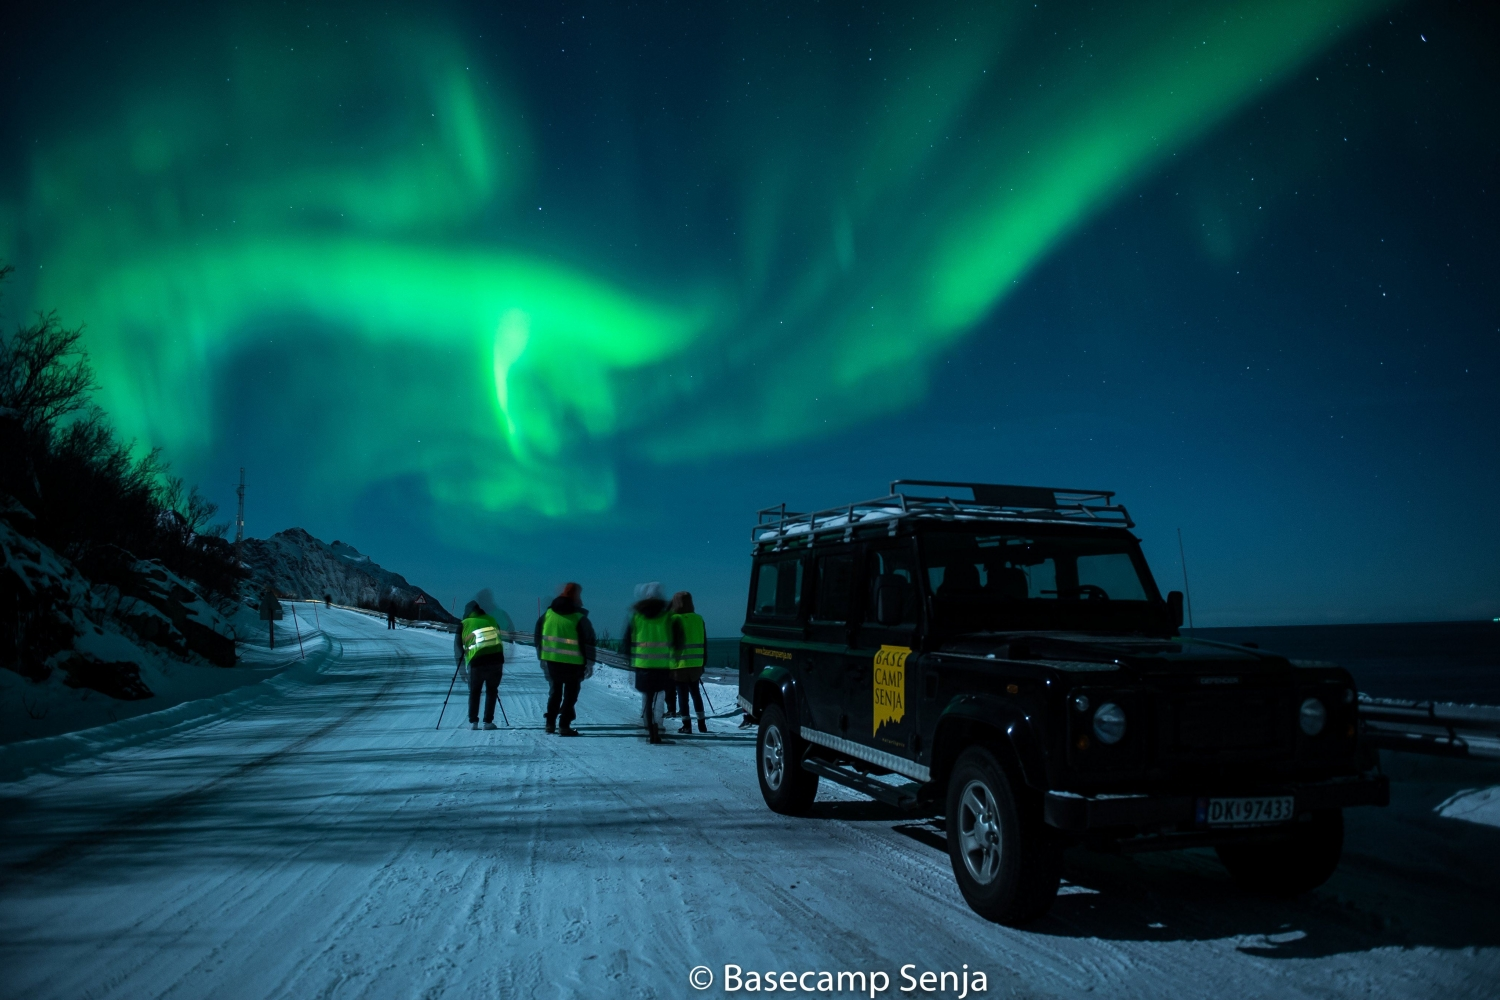 A truck and guests under the Northern Lights